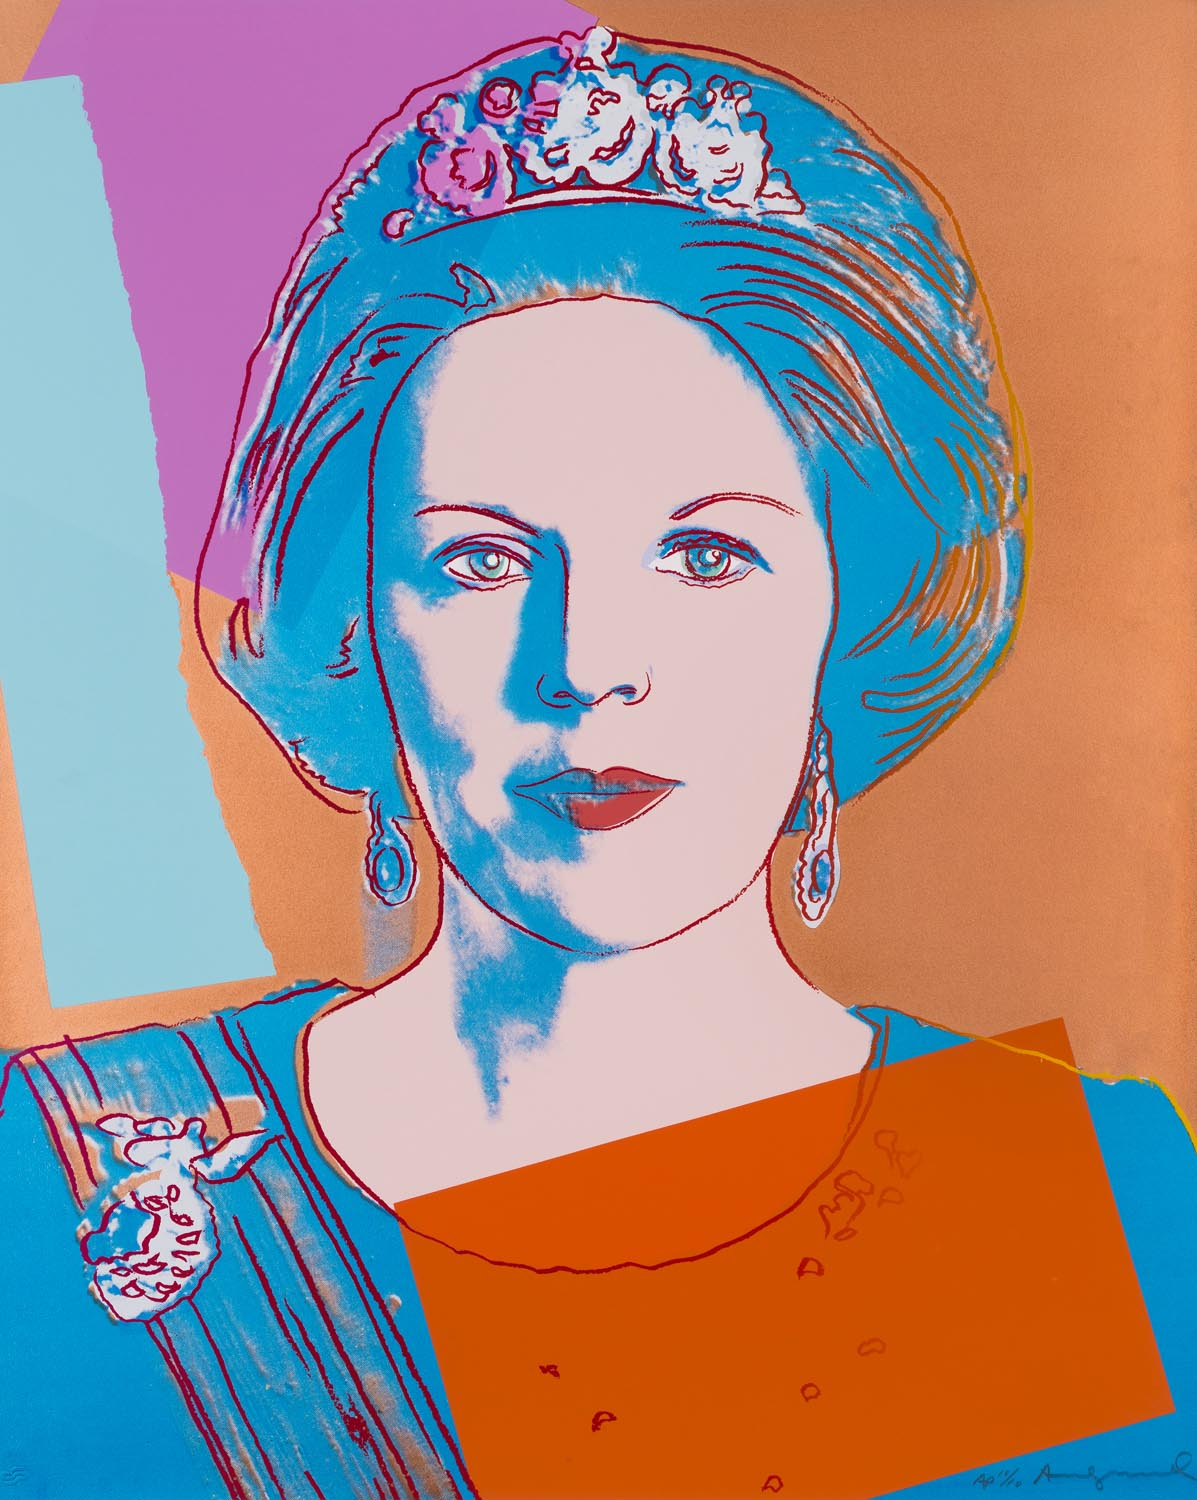 Andy Warhol - Queen Beatrix of the Netherlands - screenprint 1985 - edition PP 5/5